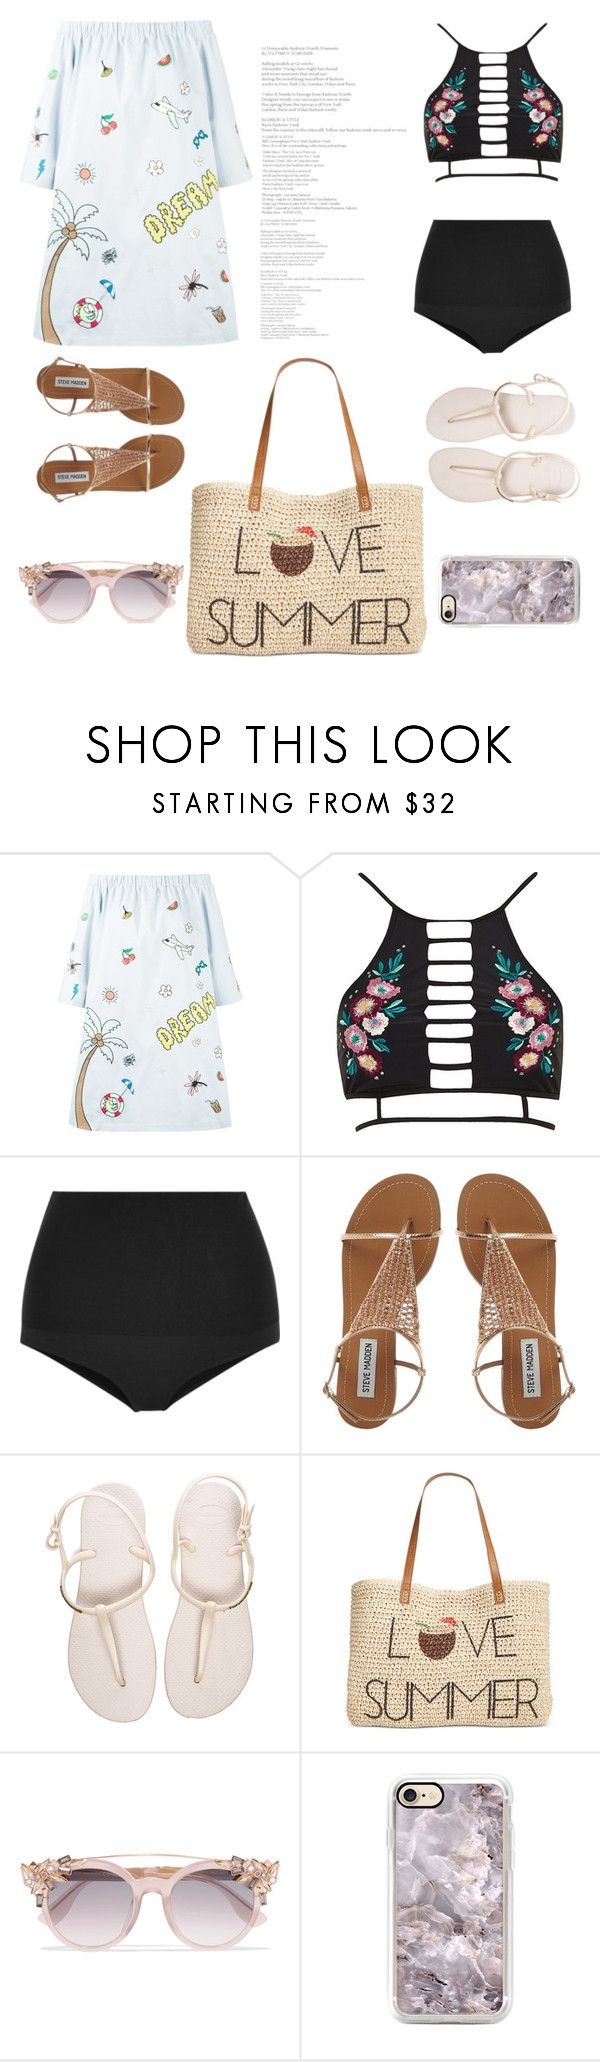 """""""Love Summer"""" by ingrid-prisacariu ❤ liked on Polyvore featuring Mira Mikati, River Island, Eres, Havaianas, Style & Co. and Jimmy Choo"""